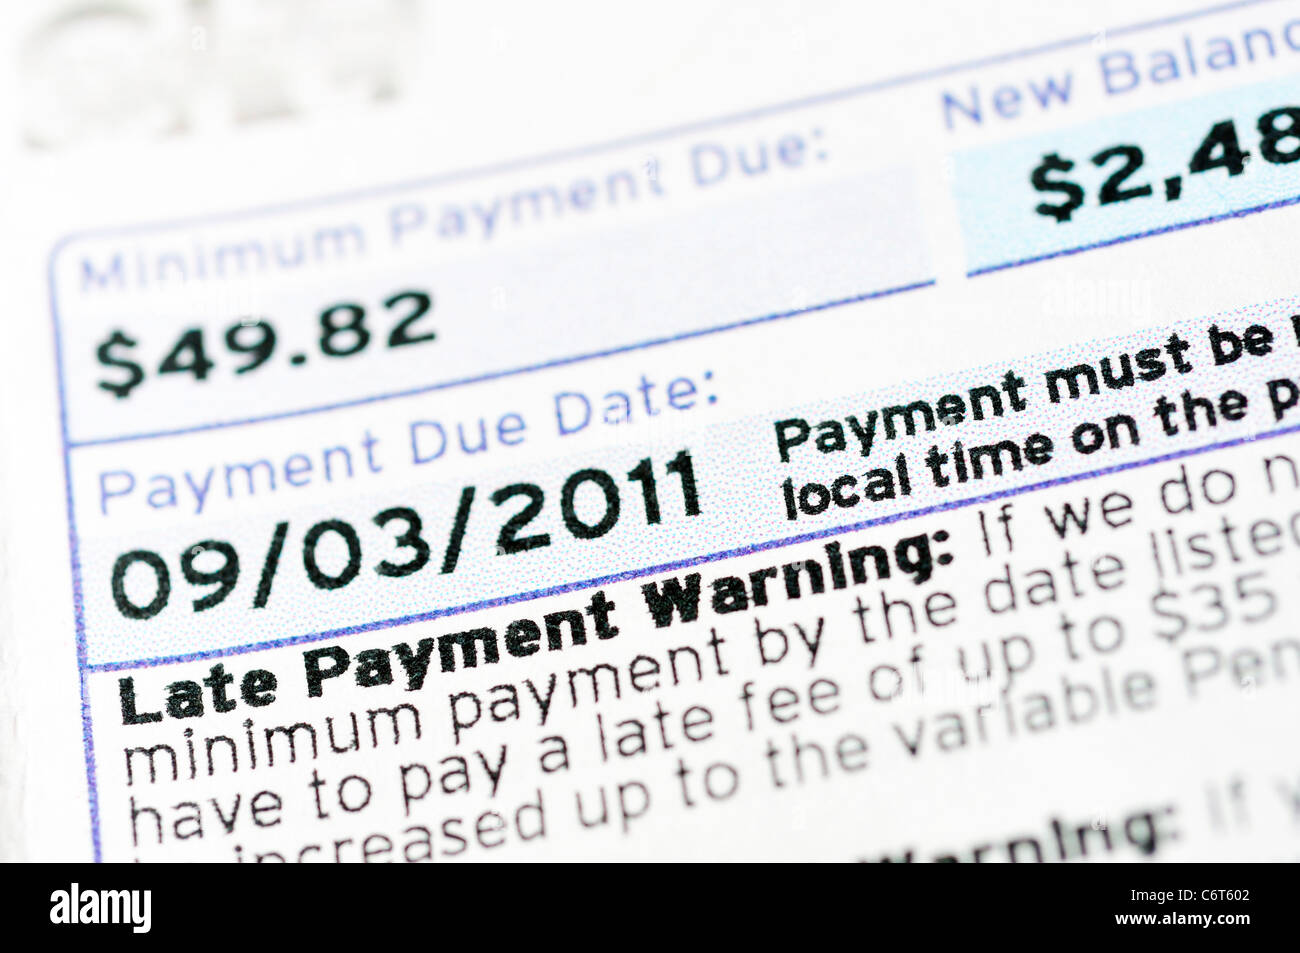 Credit card bill statement and late payment warning Stock Photo